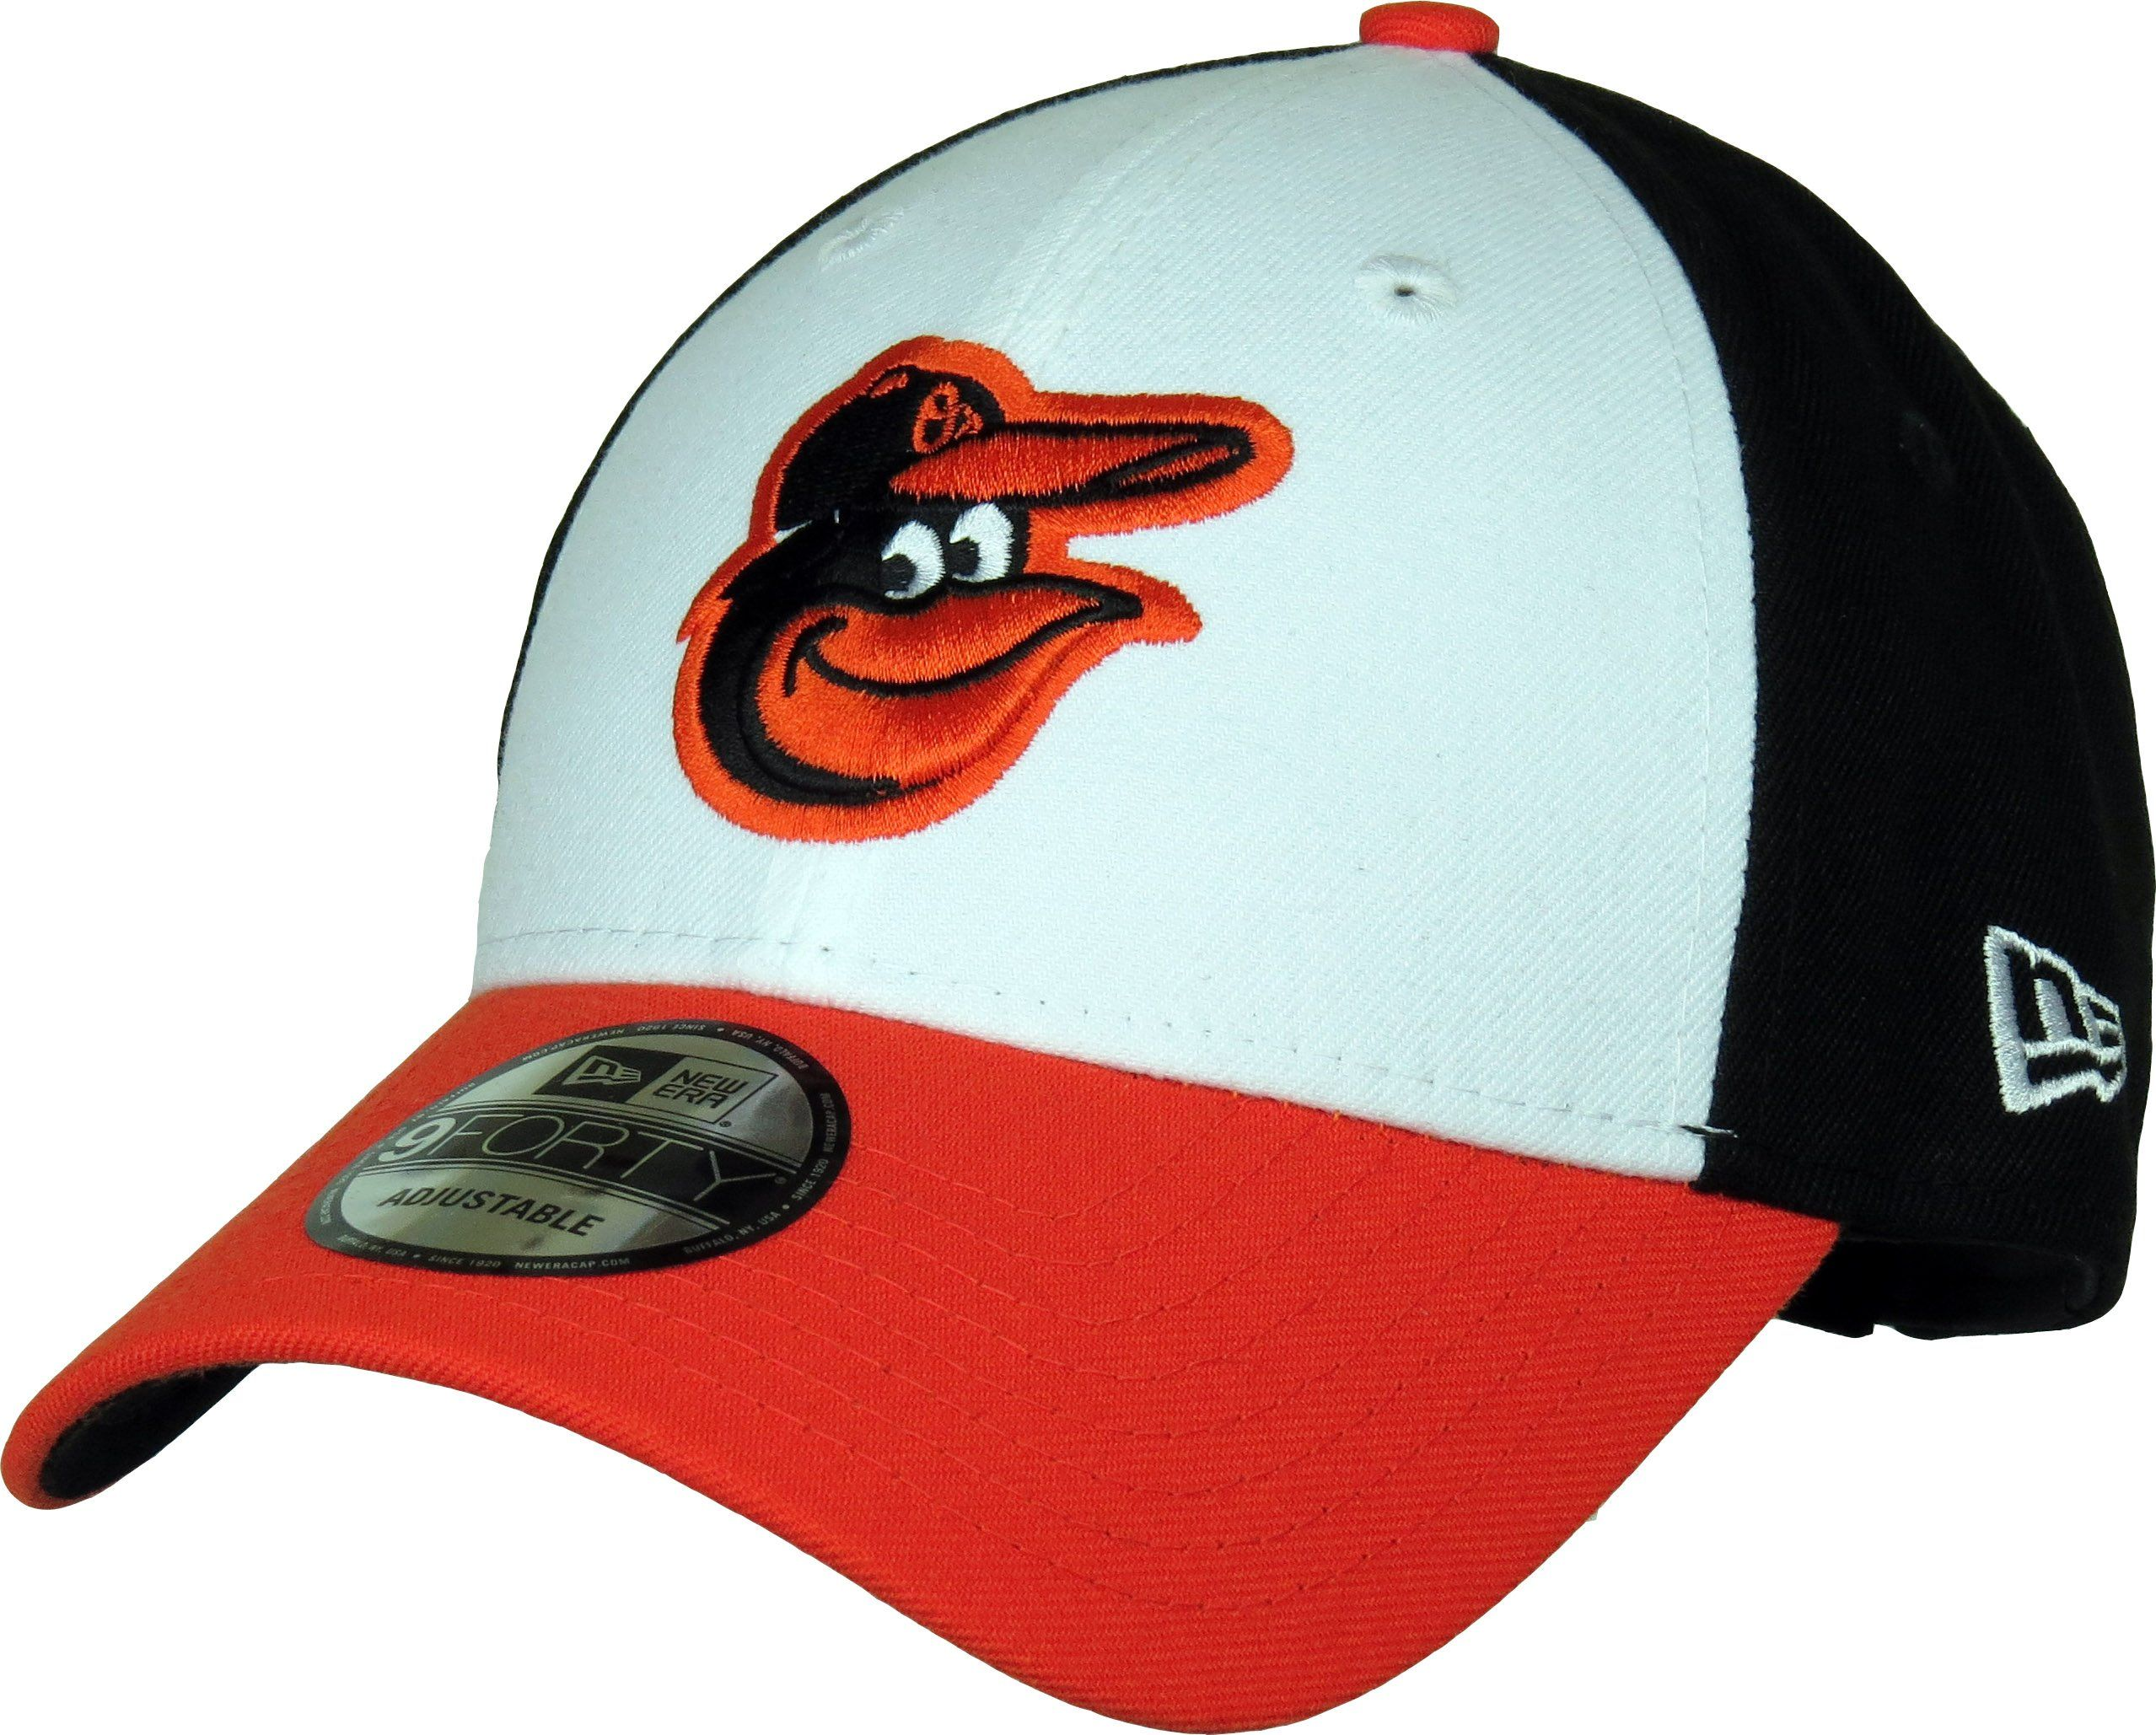 78f48ad9ba5 New Era 9Forty MLB The League Adjustable Baseball Cap. White front with the  Baltimore Orioles